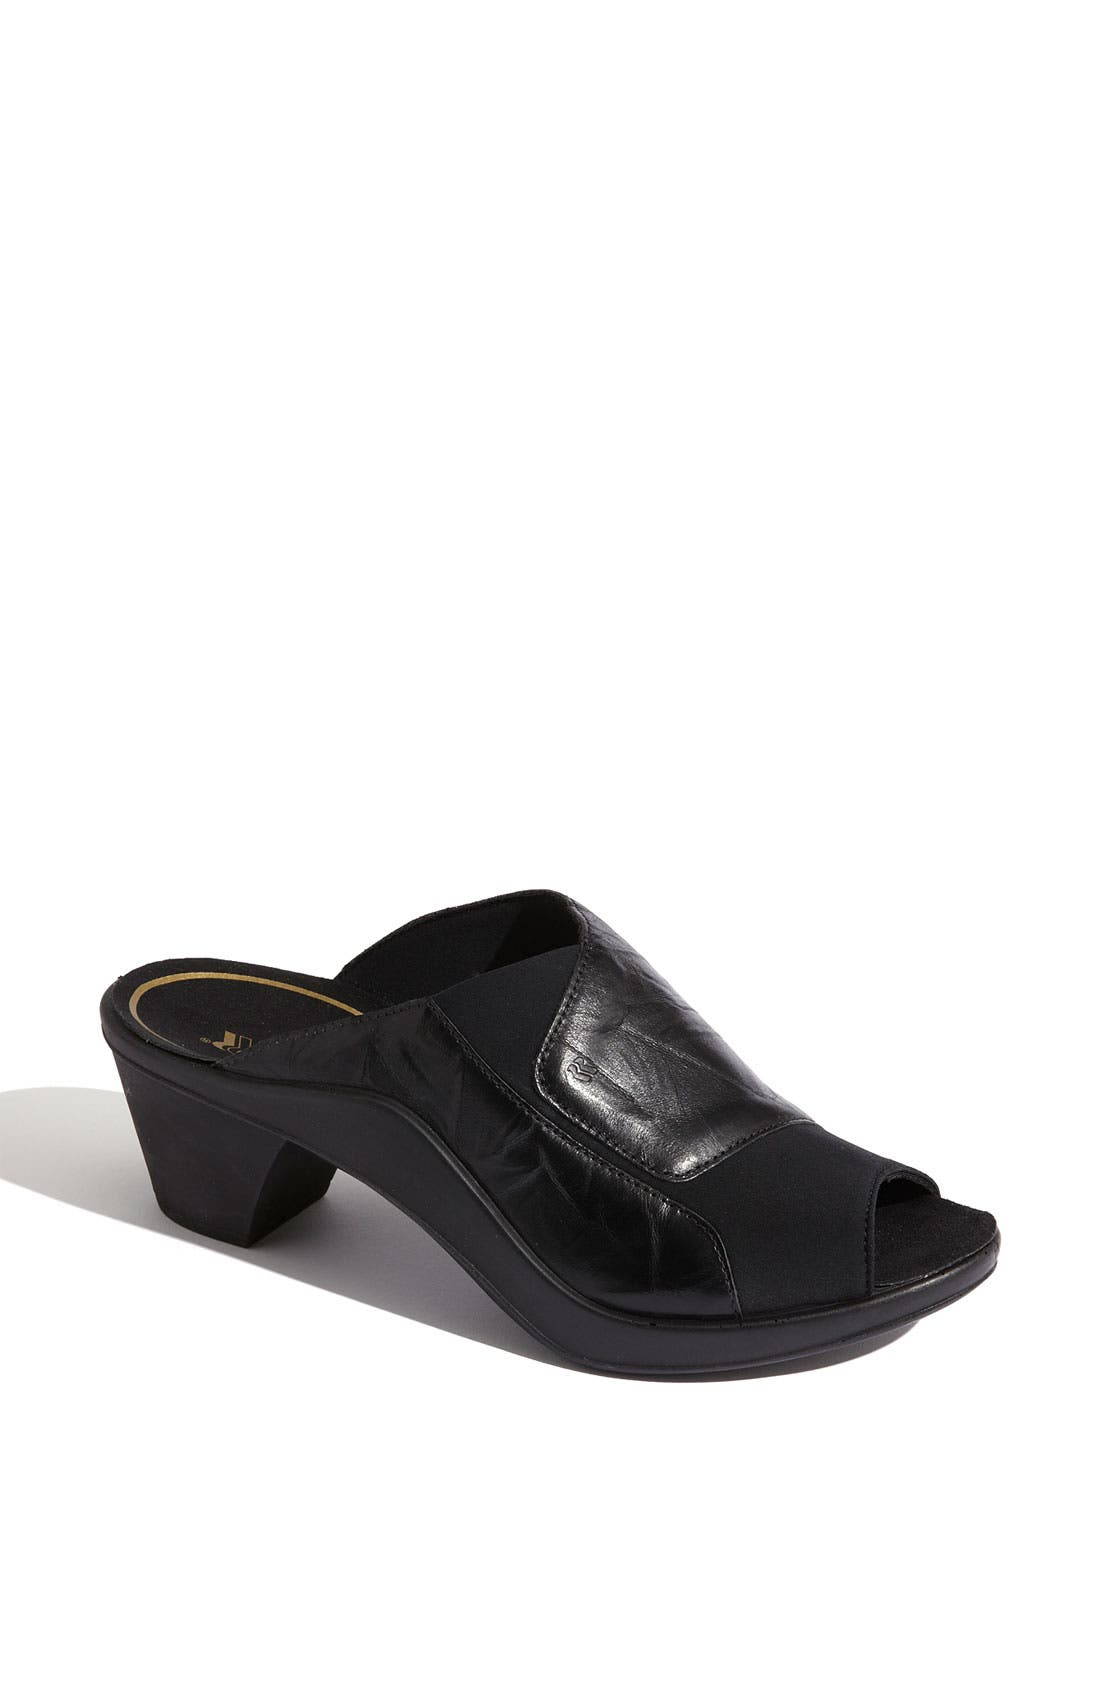 'Mokasetta' Mule,                             Main thumbnail 1, color,                             Black